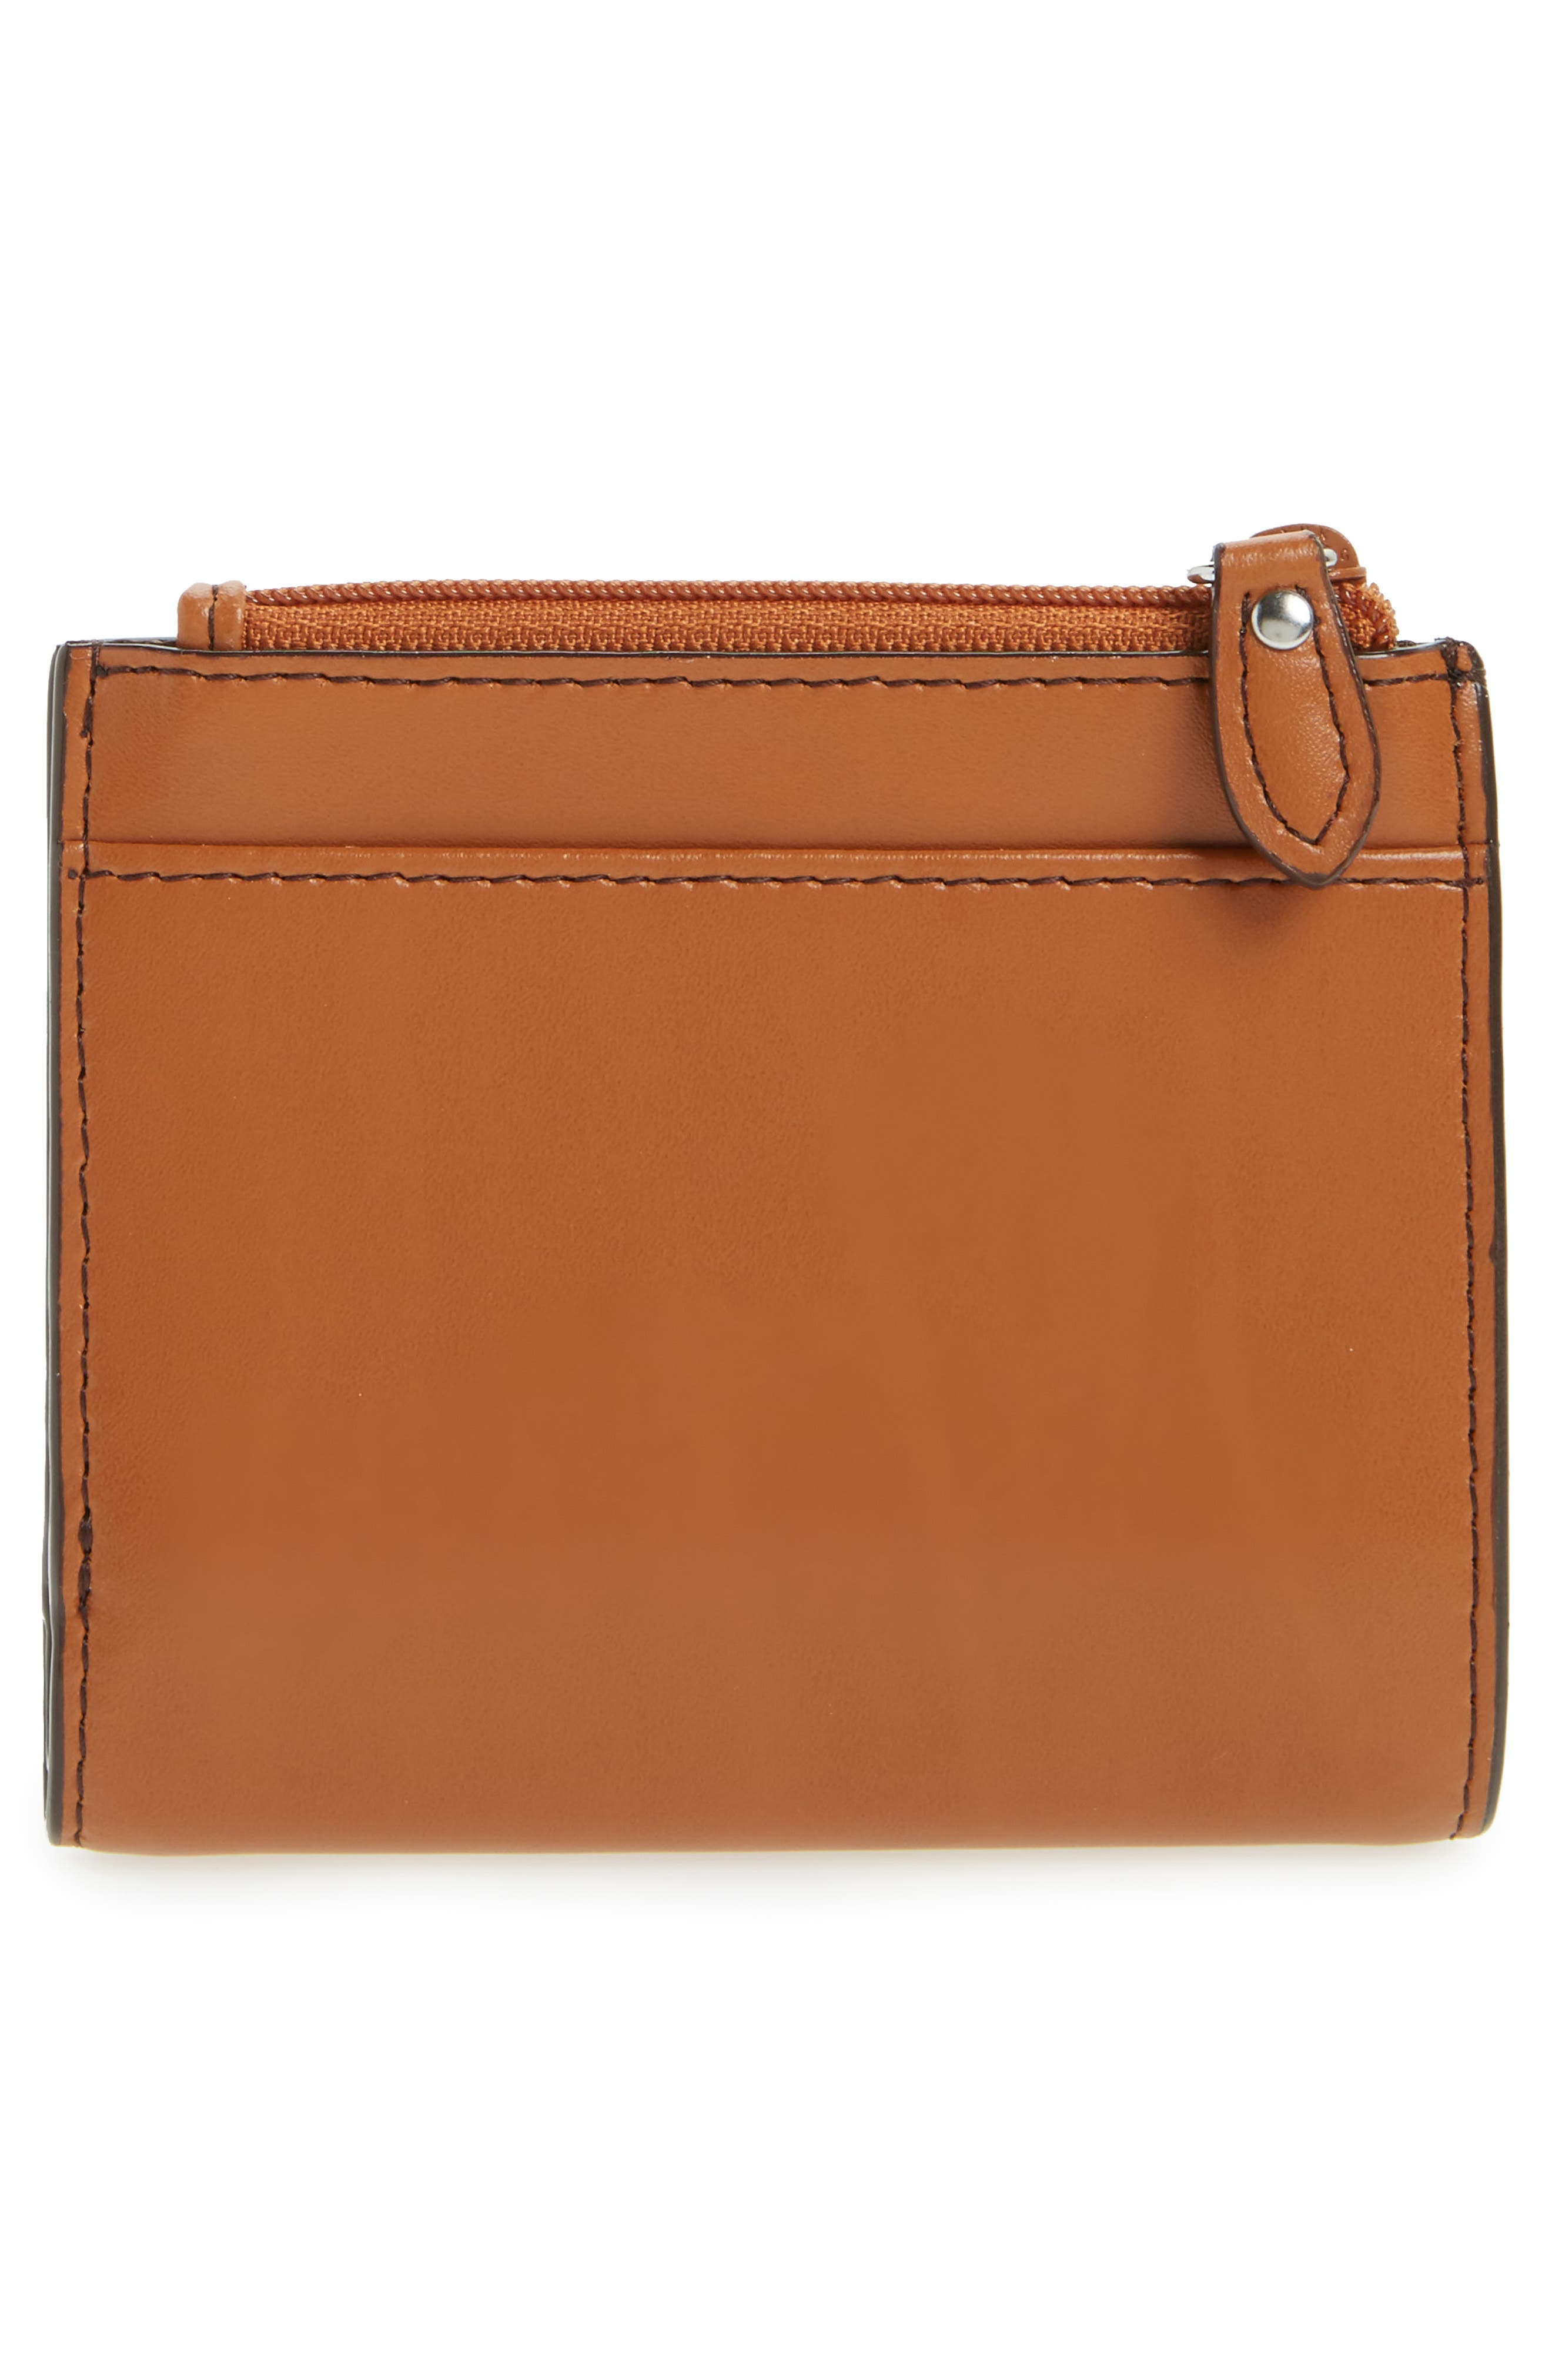 Audrey Under Lock & Key Aldis Leather Wallet,                             Alternate thumbnail 3, color,                             Toffee